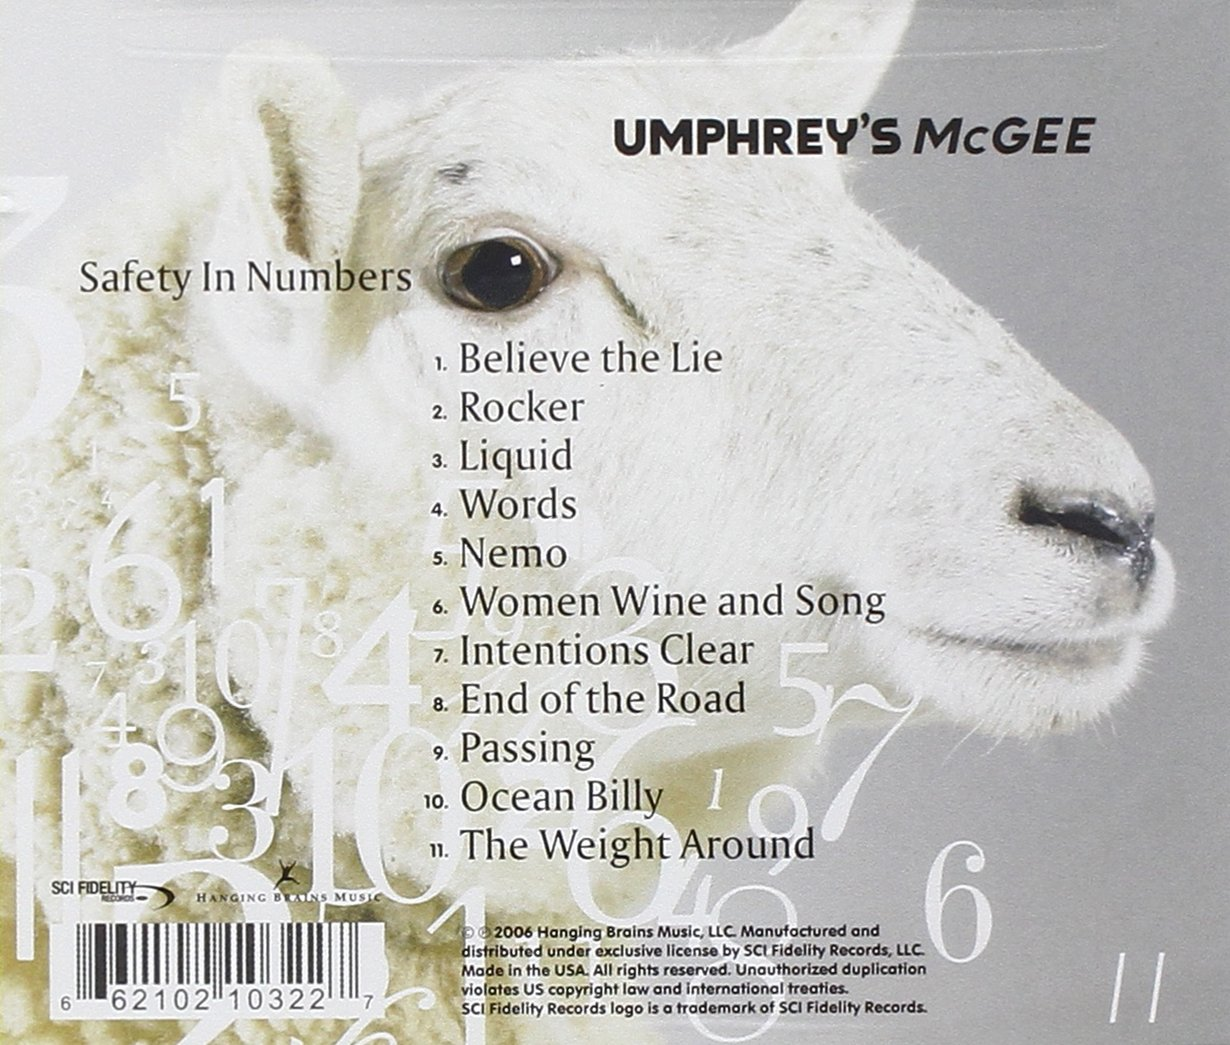 umphreys mcgee safety in numbers